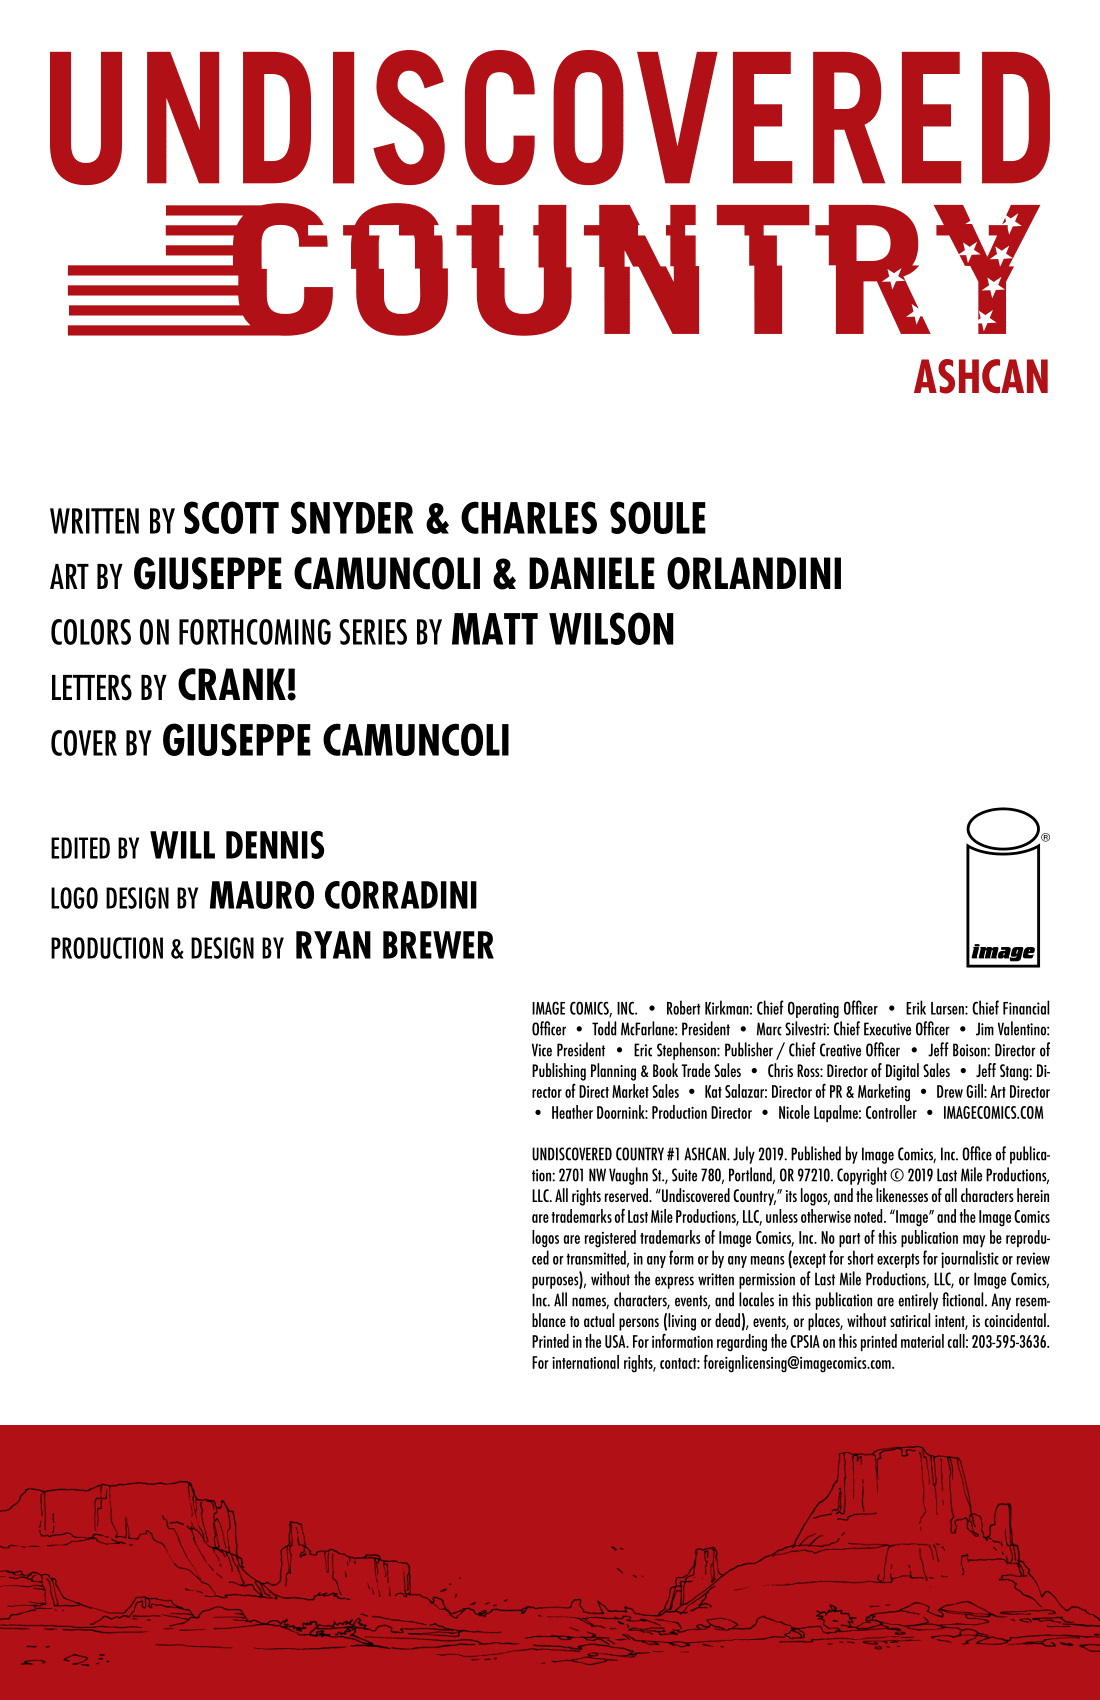 UndiscoveredCountry-01-Ashcan-FINAL-02.png